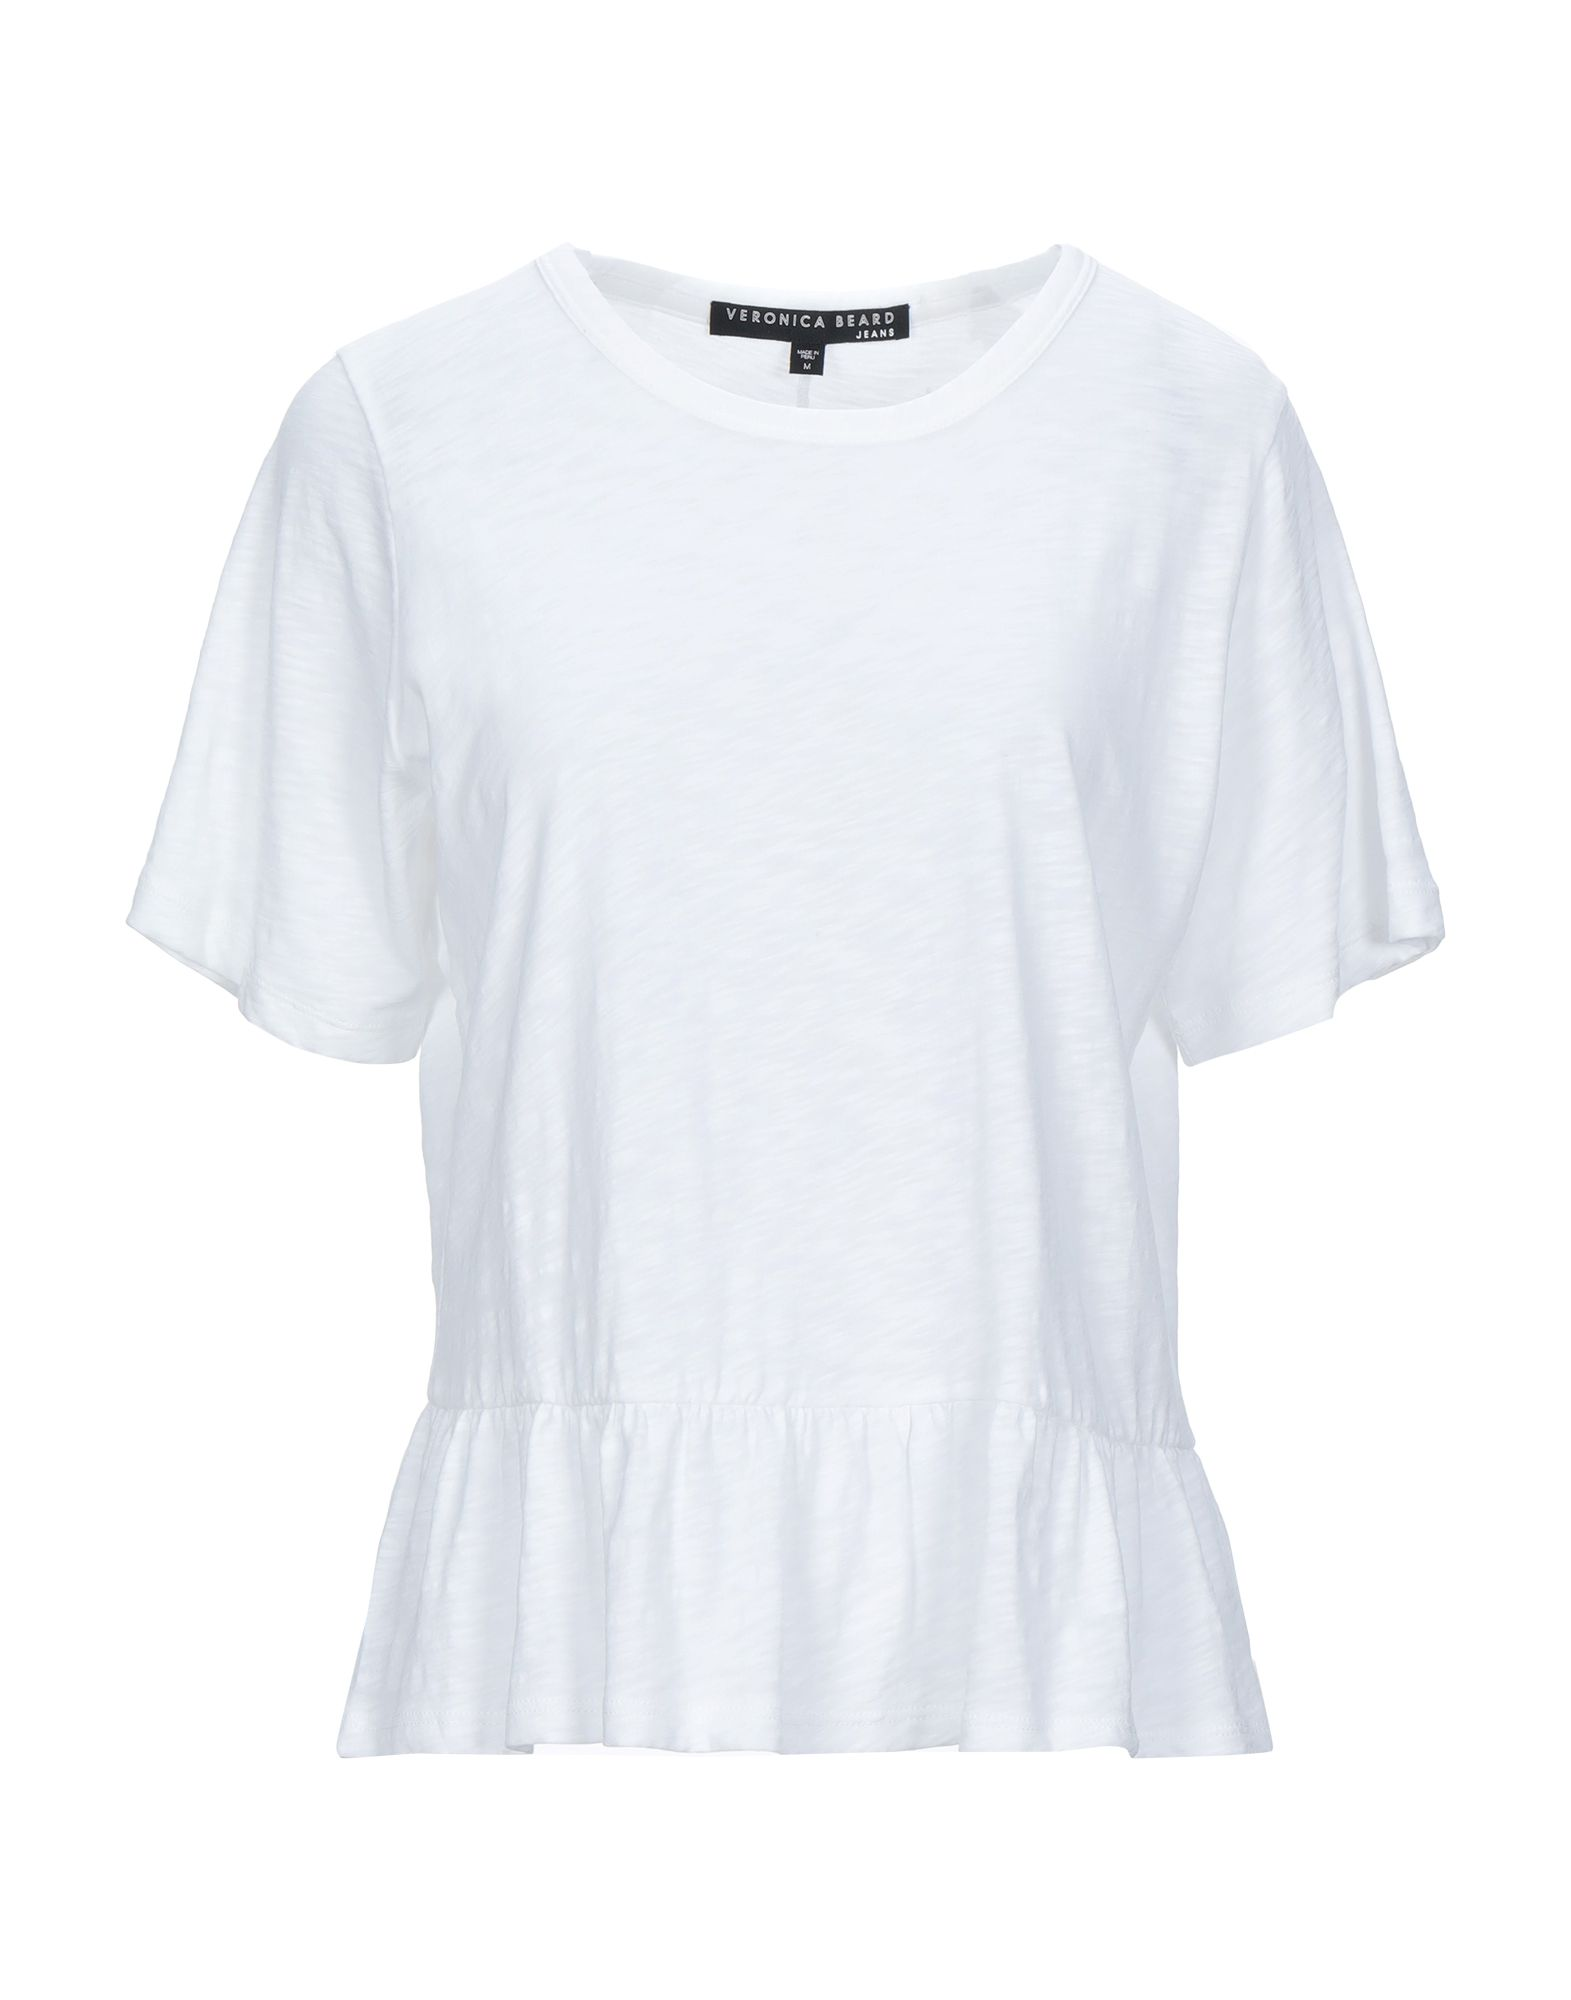 VERONICA BEARD T-shirts. jersey, frills, basic solid color, round collar, short sleeves, no pockets. 100% Supima Cotton